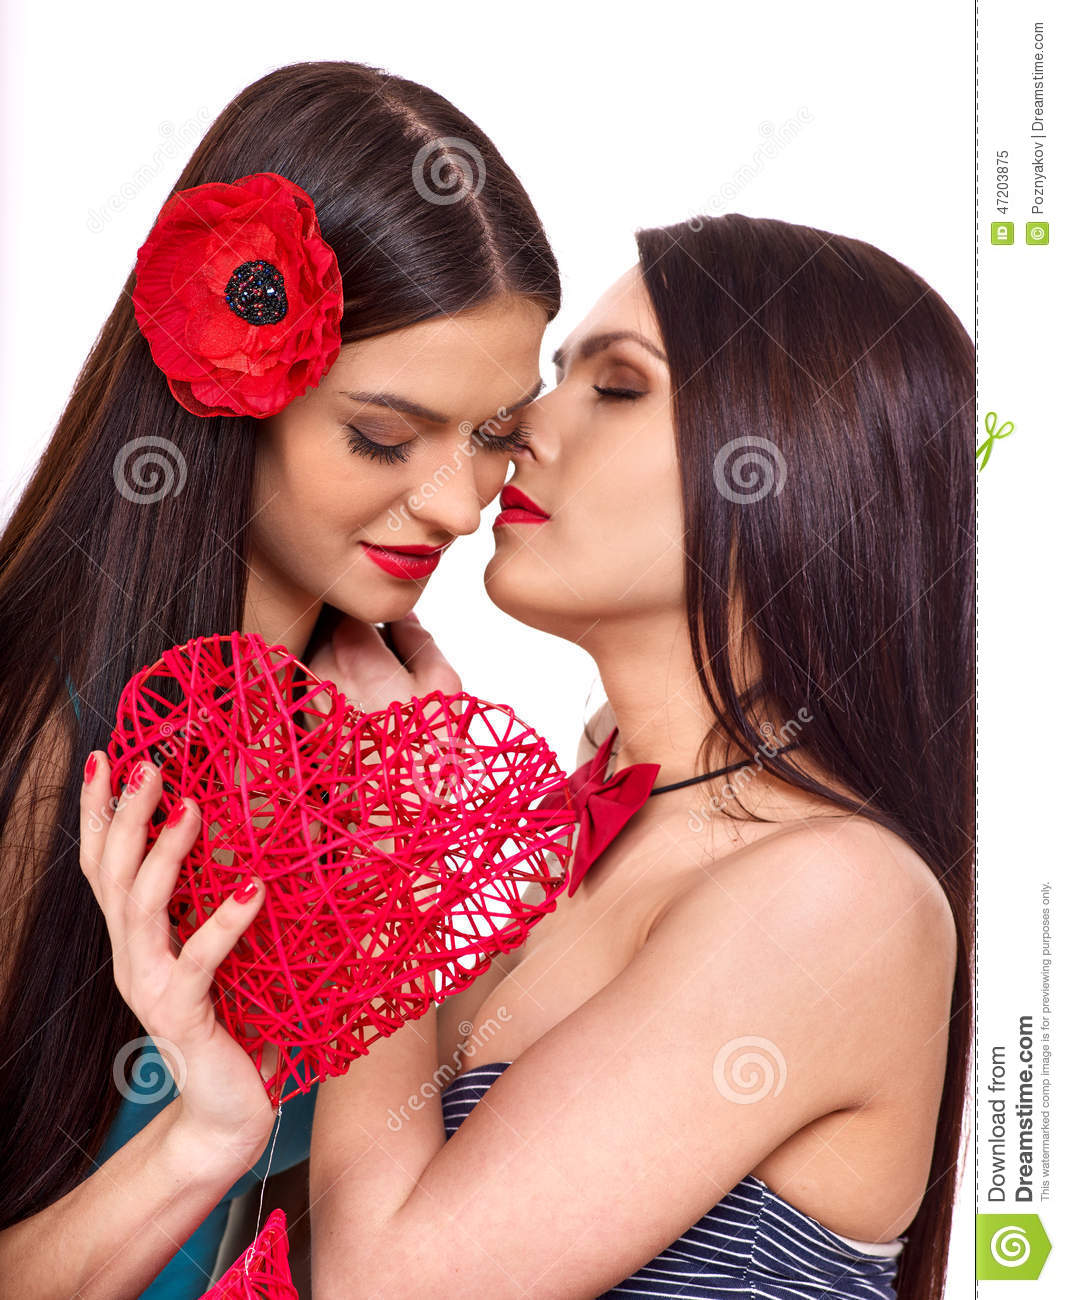 Lesbian Foreplay Tips 85